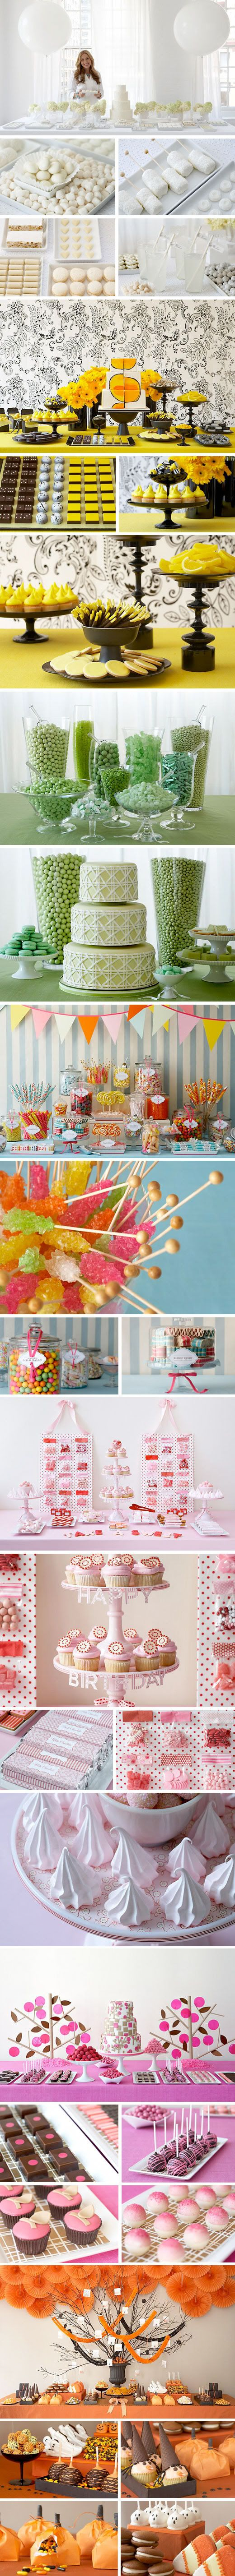 This site has so many fun creative ideas and color combos for birthdays, showers, weddings and holidays.